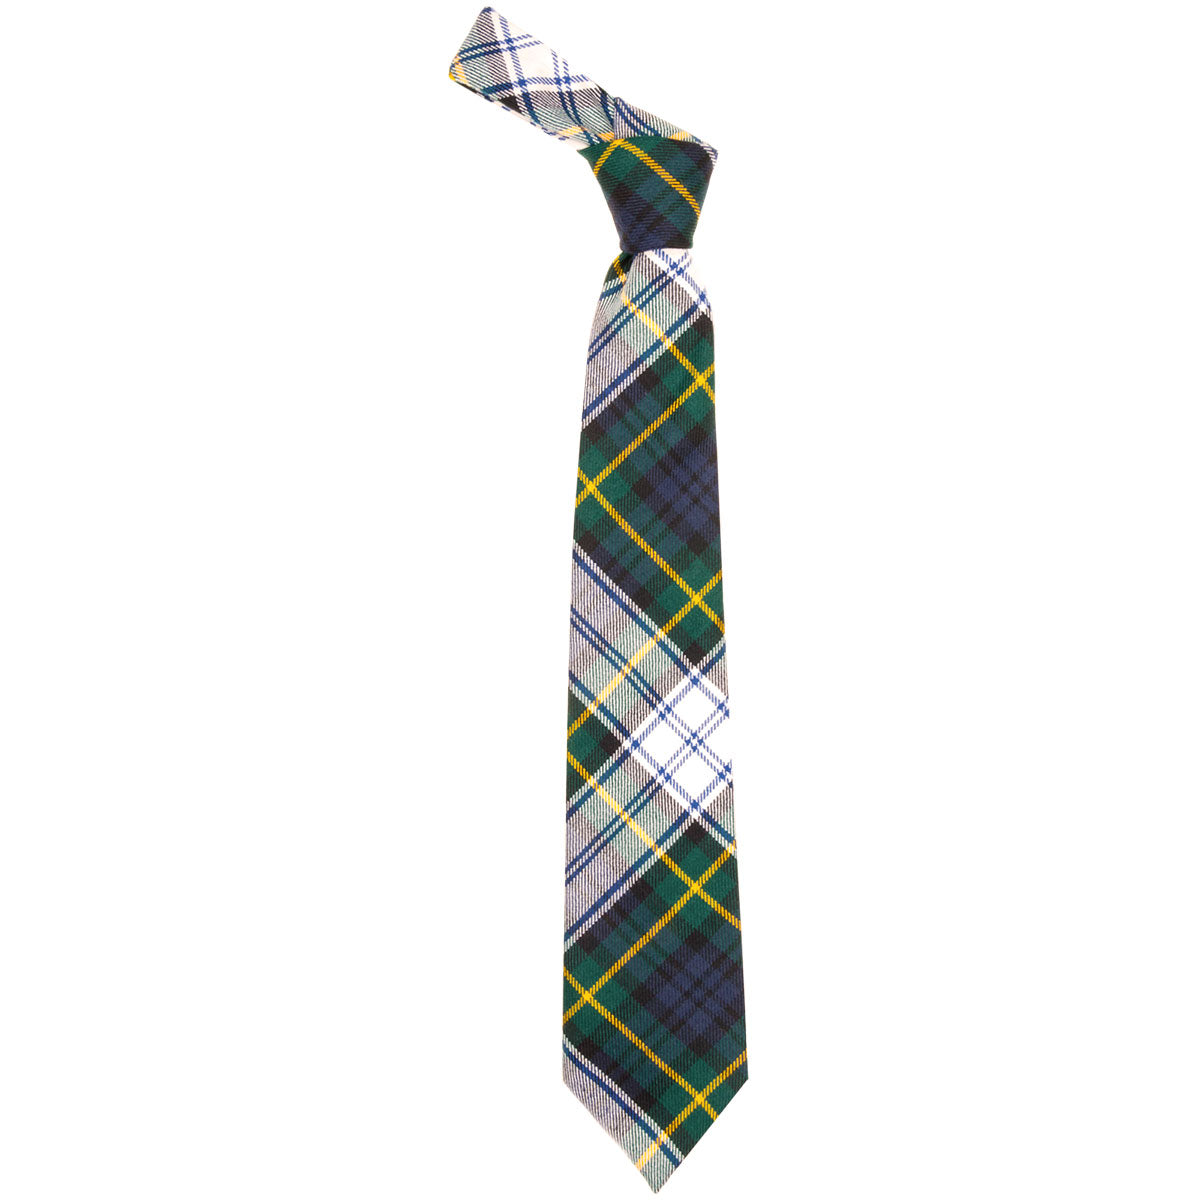 Gordon Dress Modern Tartan Tie - Lochcarron weavers